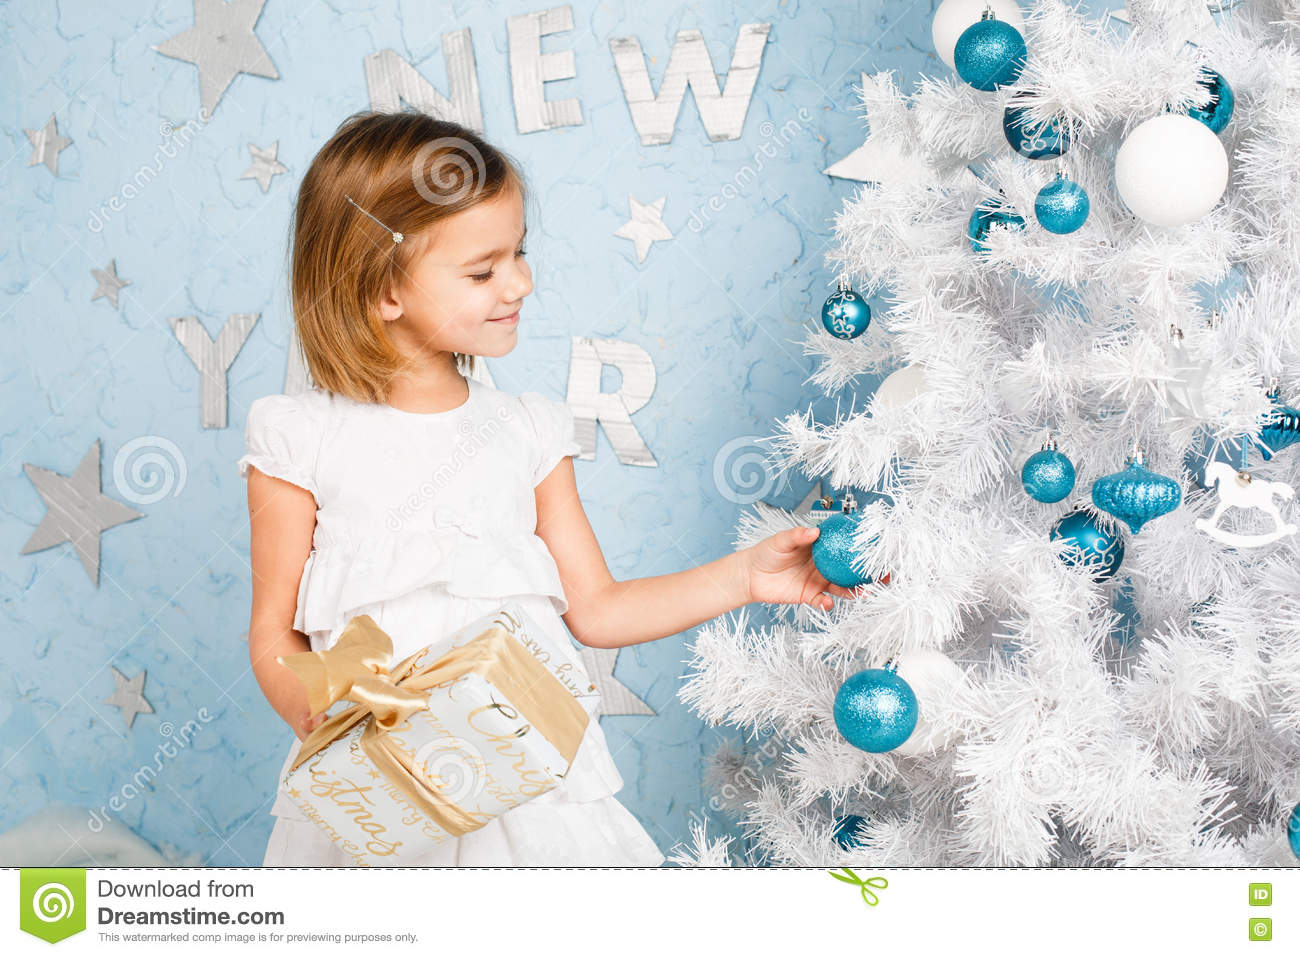 Girl decorates the Christmas tree balls and smiling